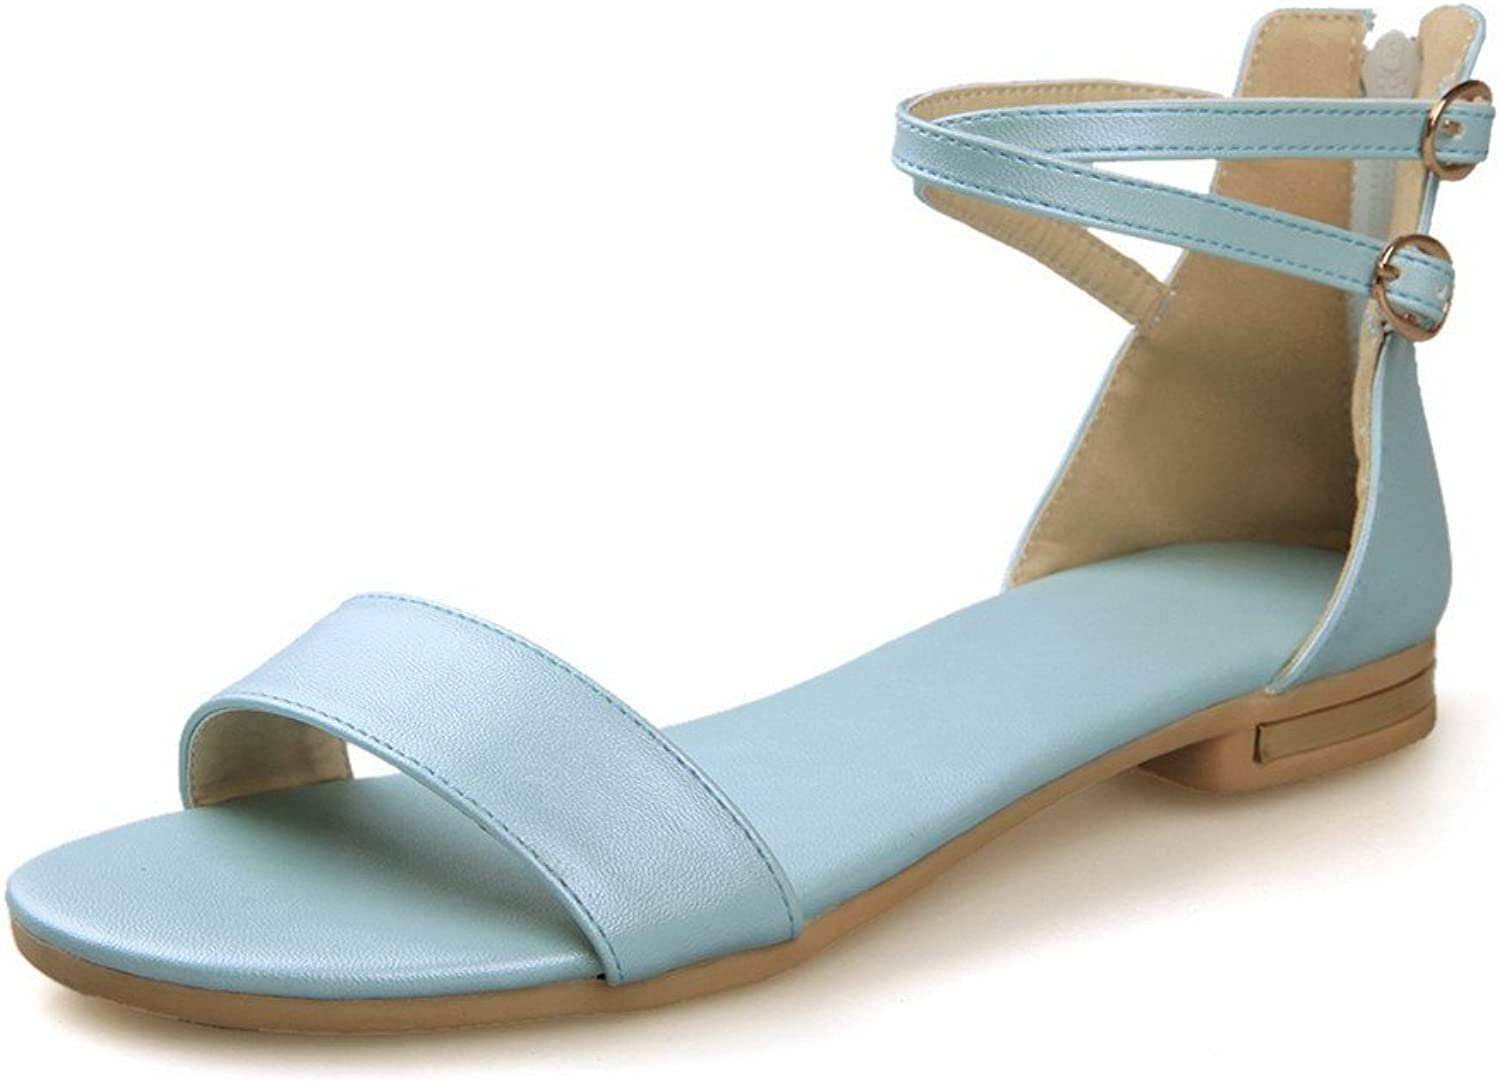 AmoonyFashion Womens Open Toe Low Heel Soft Material PU Solid Sandals with Zippers, Lightbluee, 7.5 B(M) US